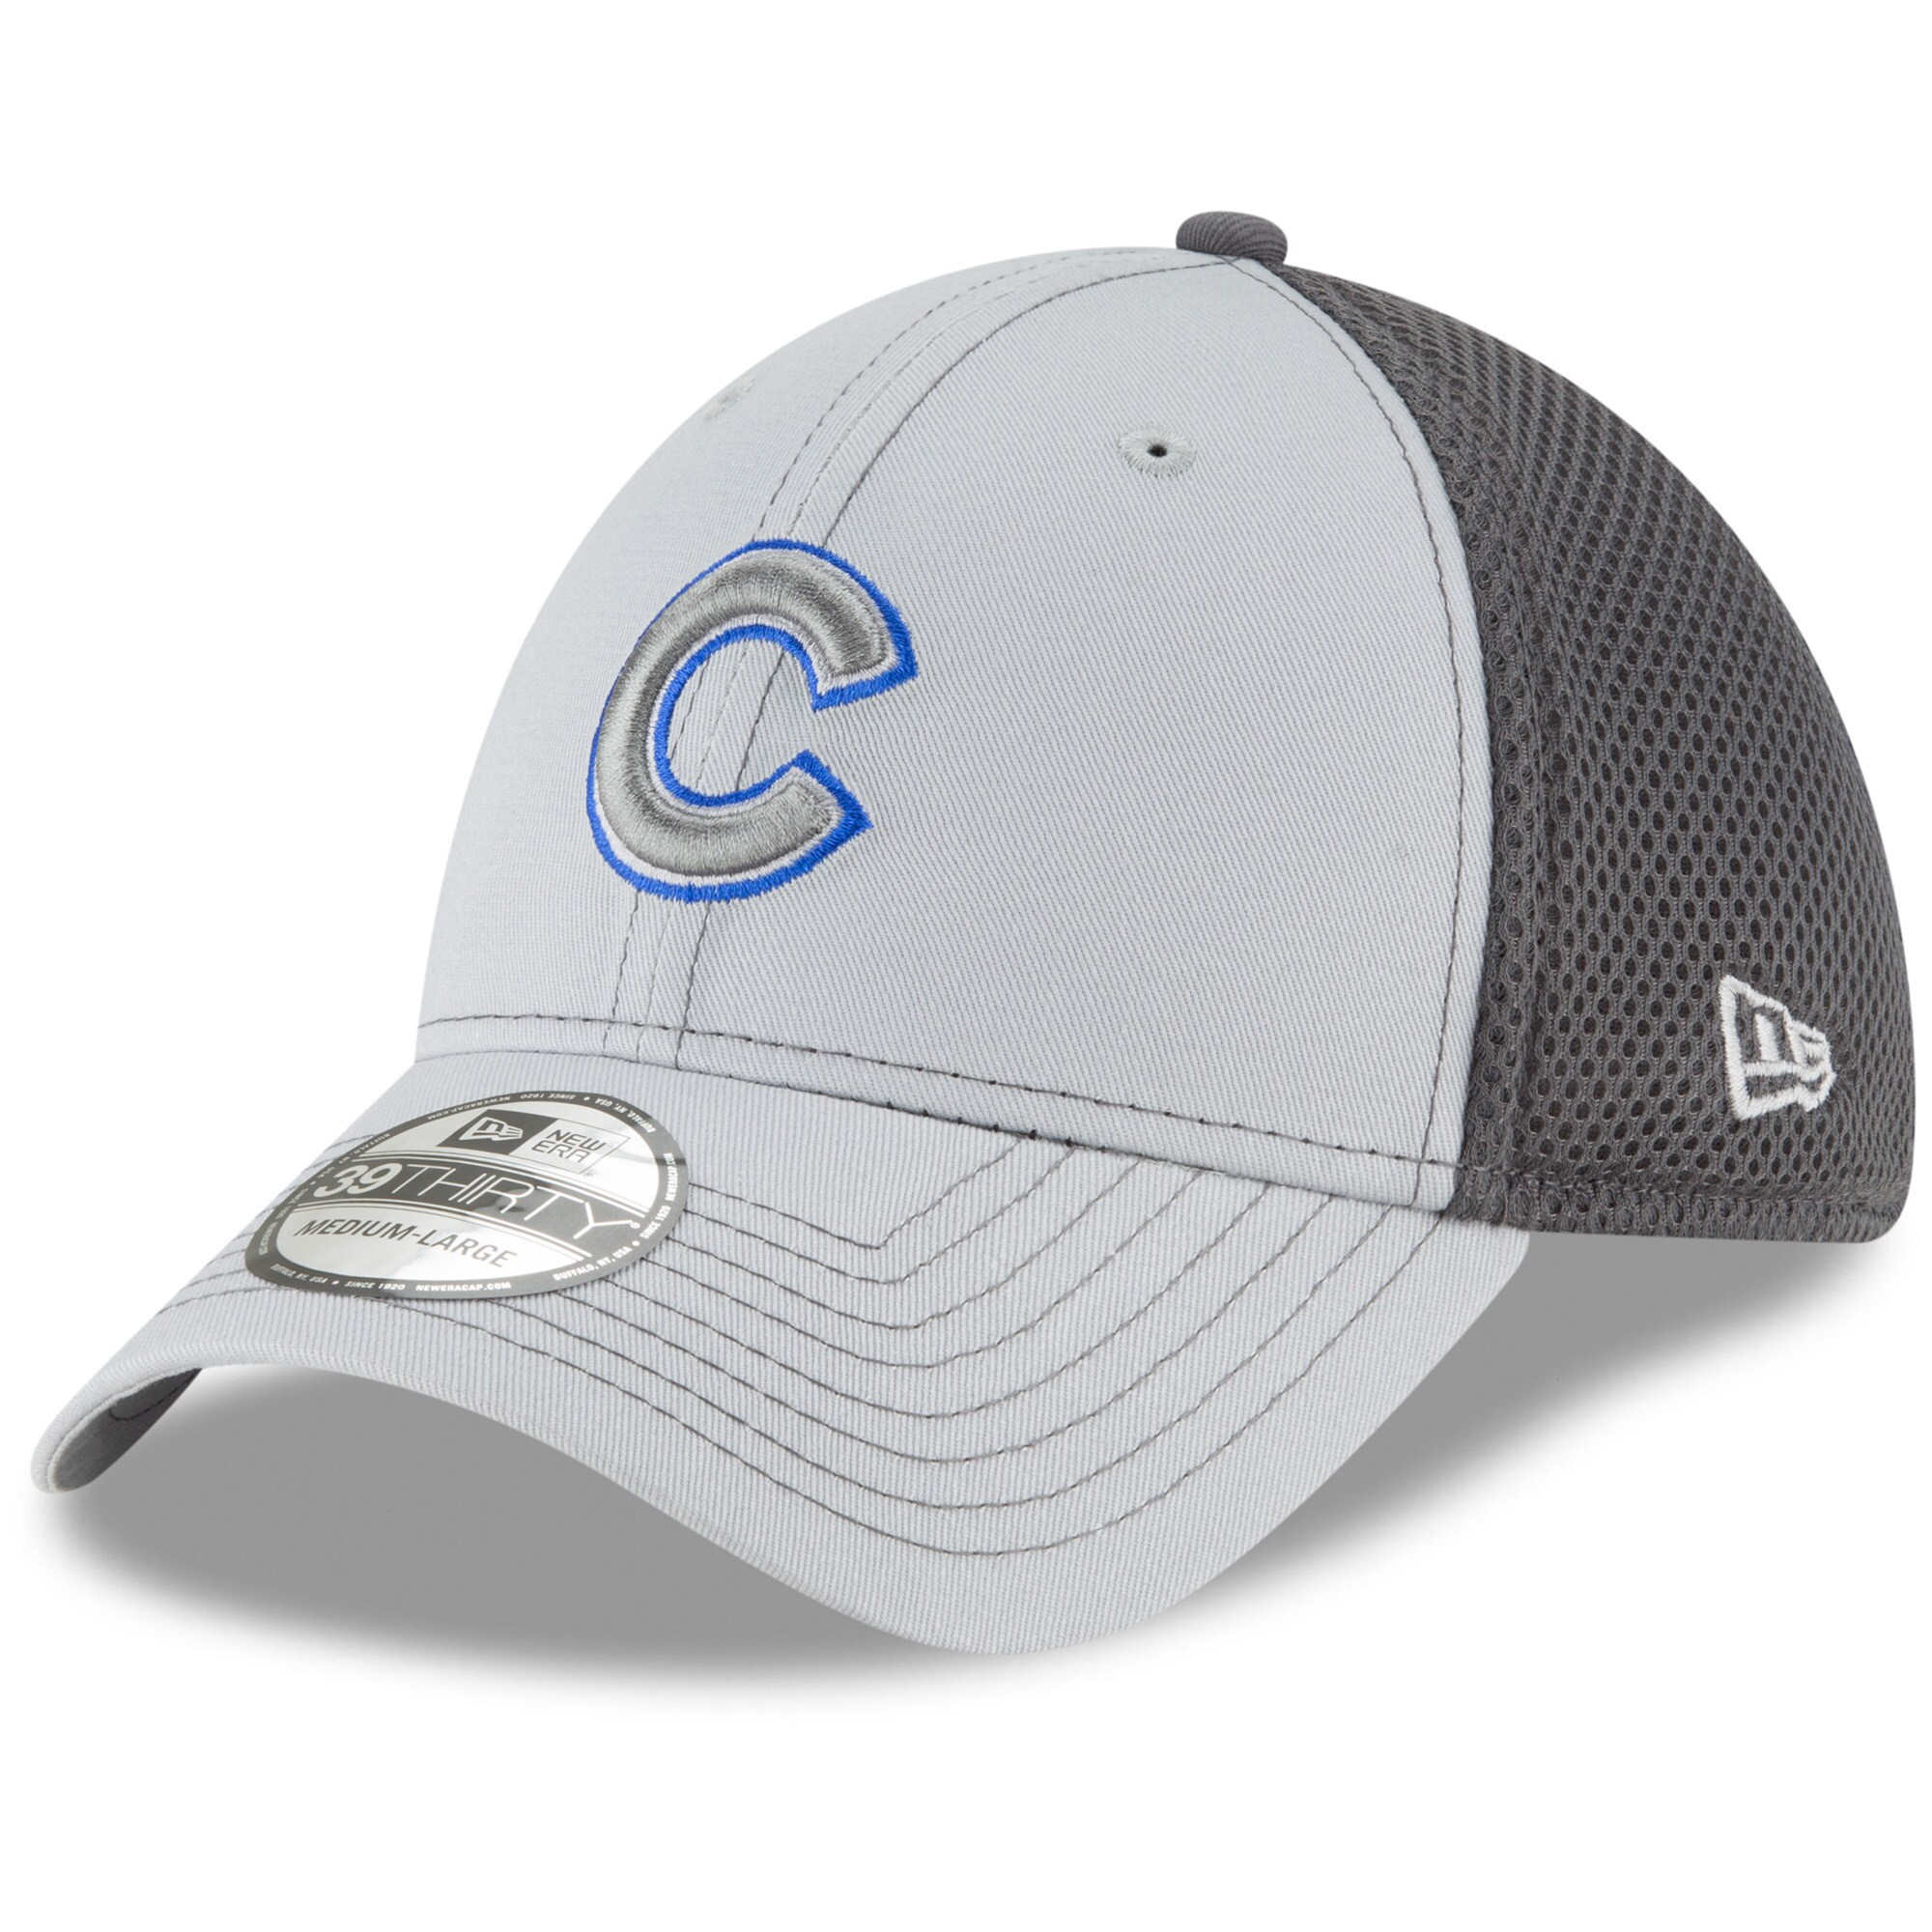 Chicago Cubs New Era Grayed Out Neo 39THIRTY Flex Hat - Gray